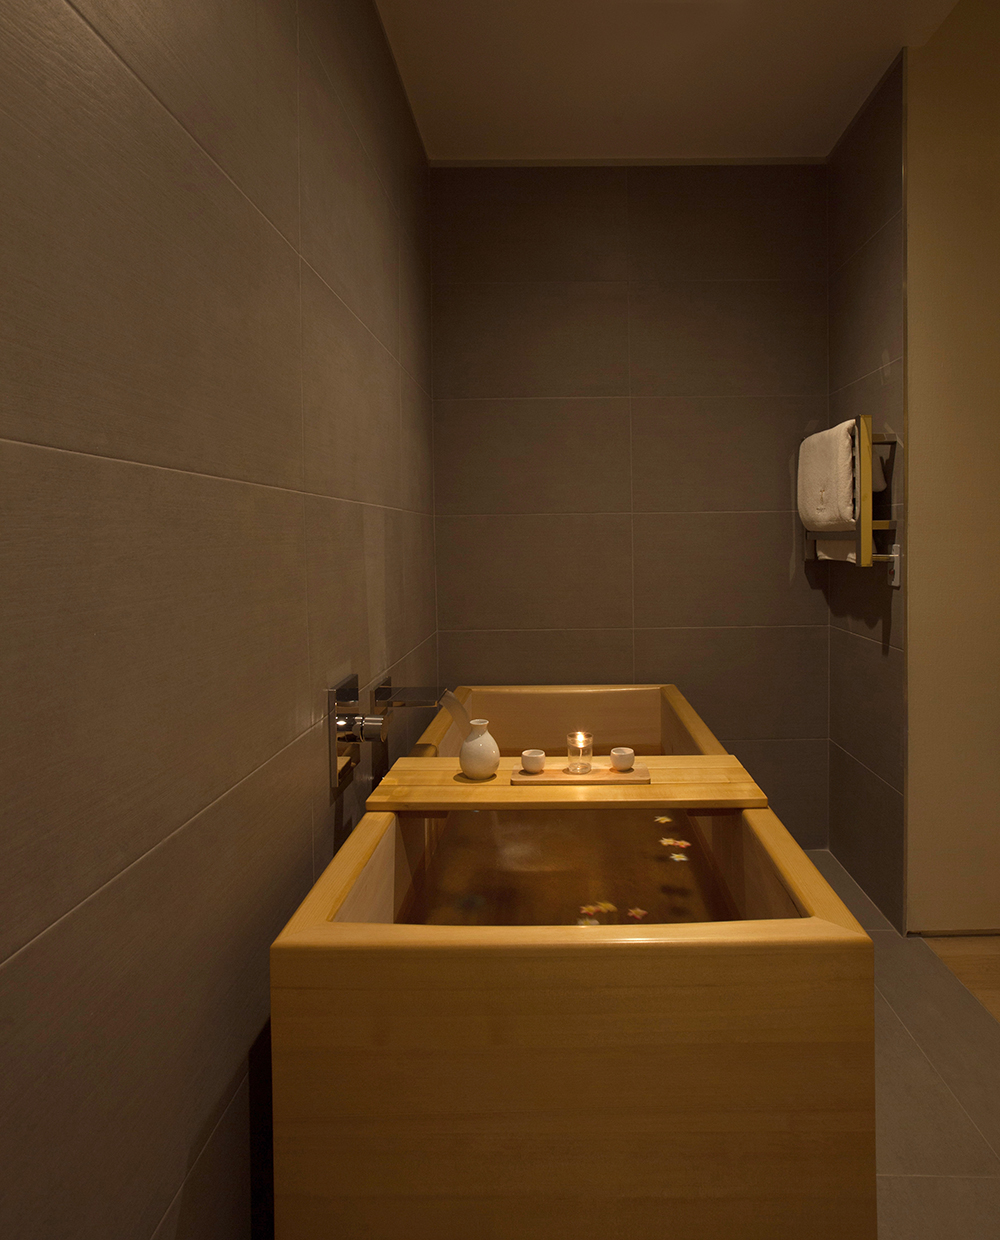 Bathtub at Tomoko.jpg